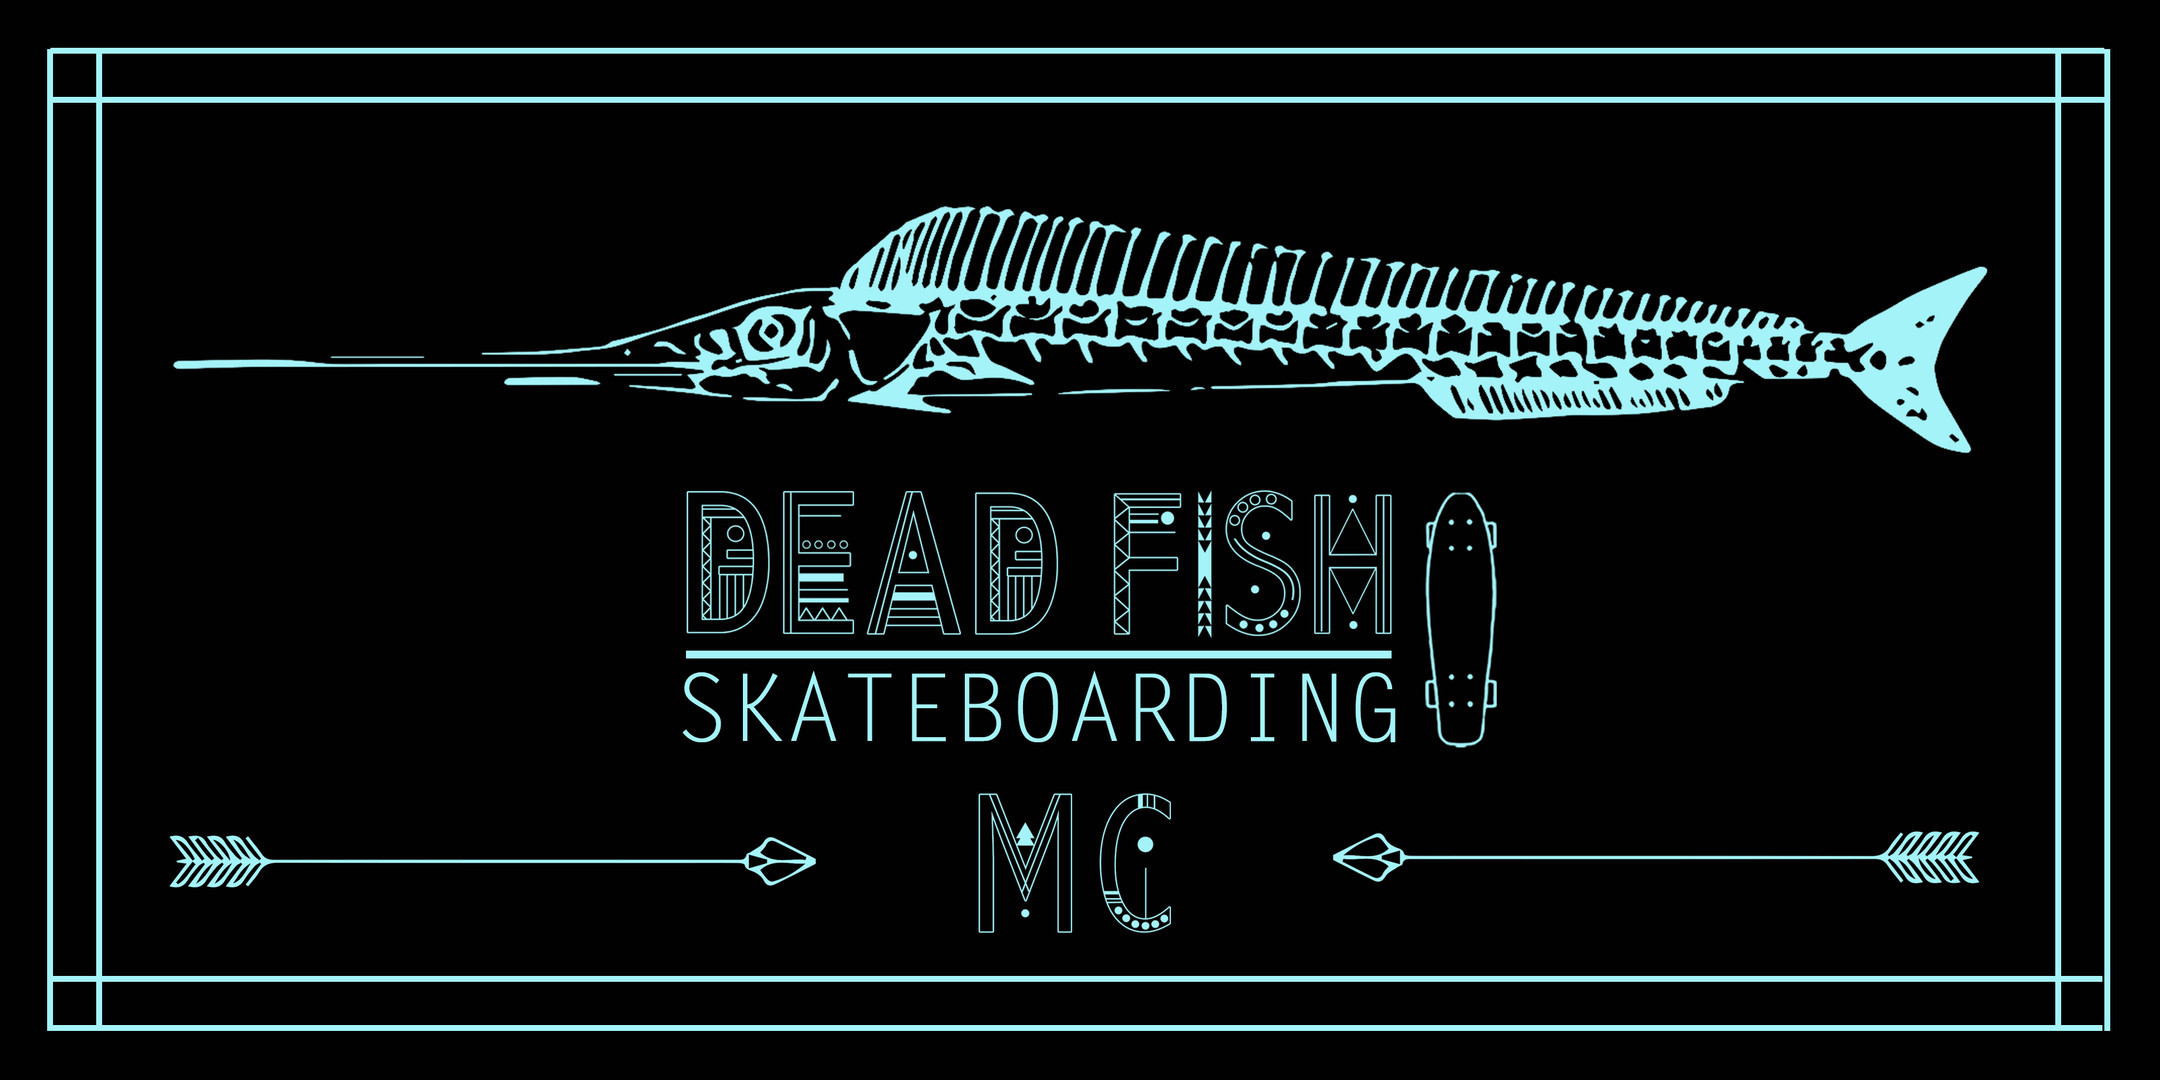 deadfishbusinesscardfrontofficial.jpg